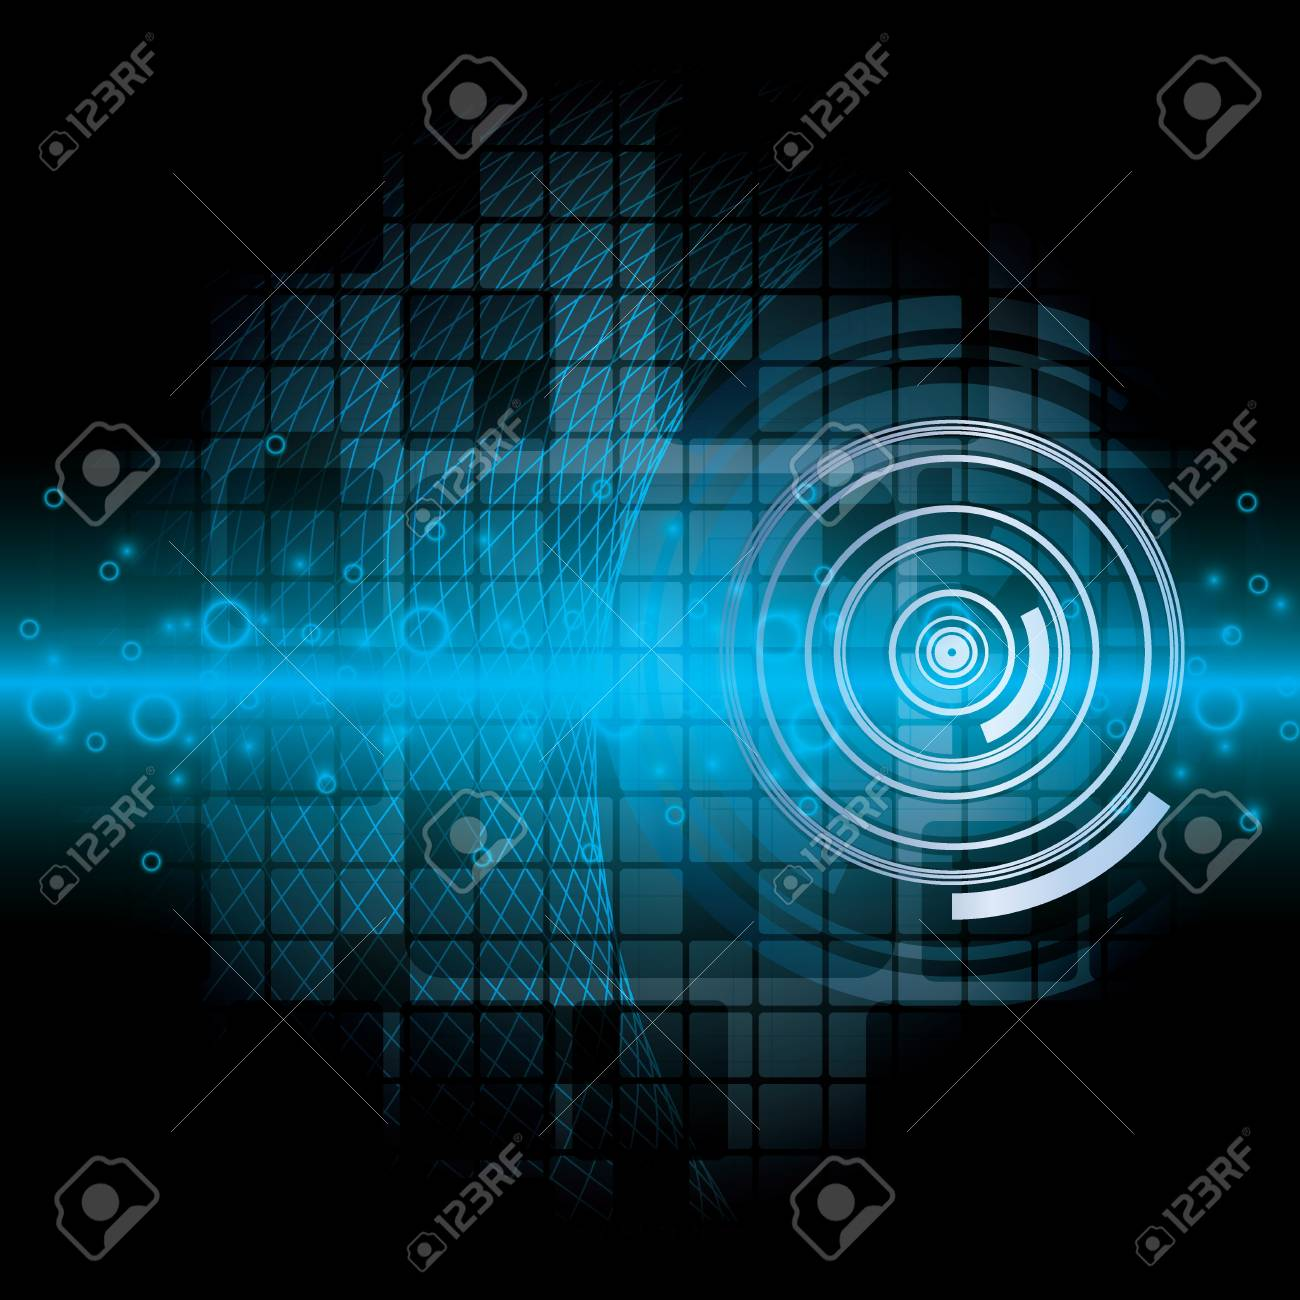 Blue abstract tech background on black background Stock Vector - 19551163